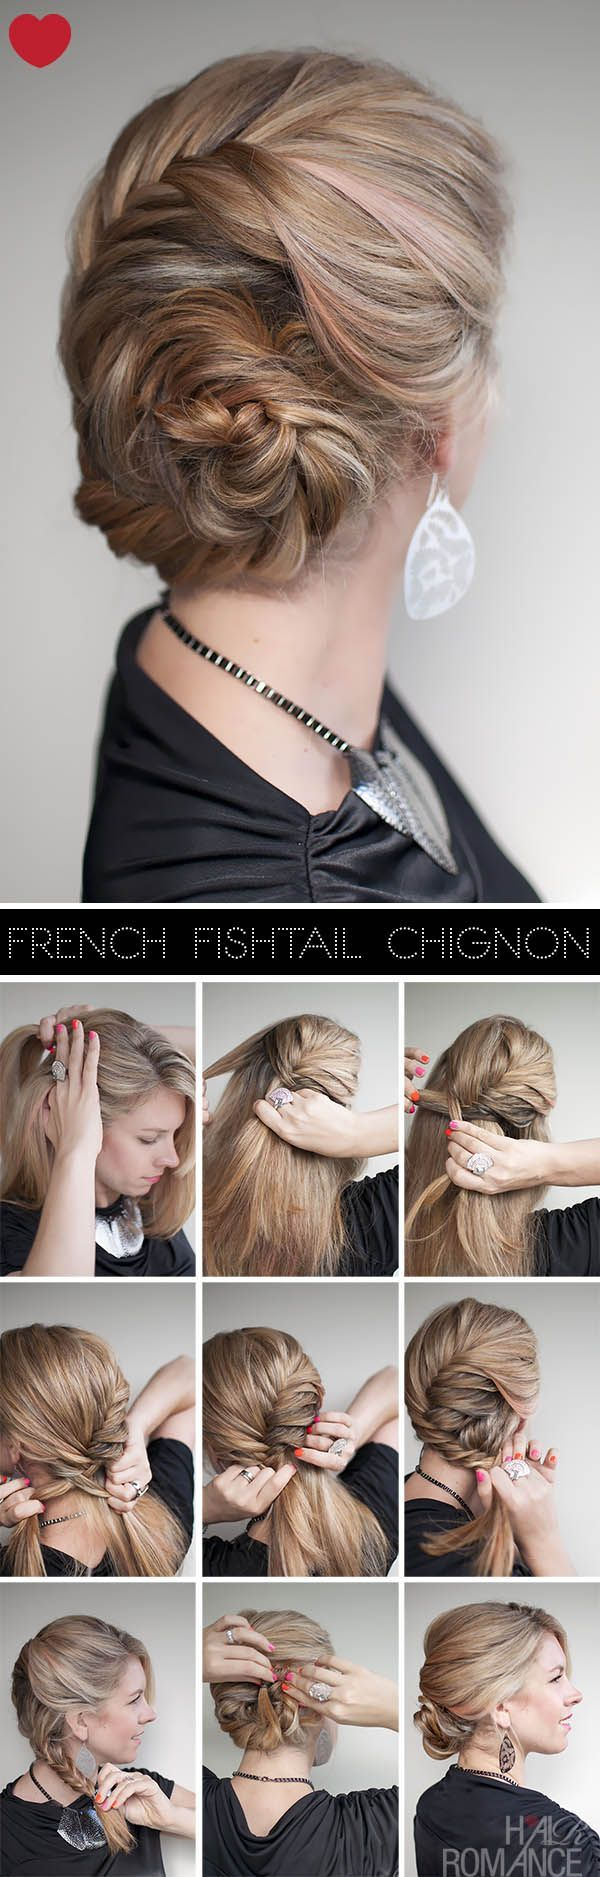 DIY Hair Style French fishtail chignon - someday I'll learn how to do my own hair like this.: Hair Diy, Hair Tutorial, Easy Braided Hairstyles, Hair Style, Diy Hairstyles Easy, Diy Easy Hairstyles